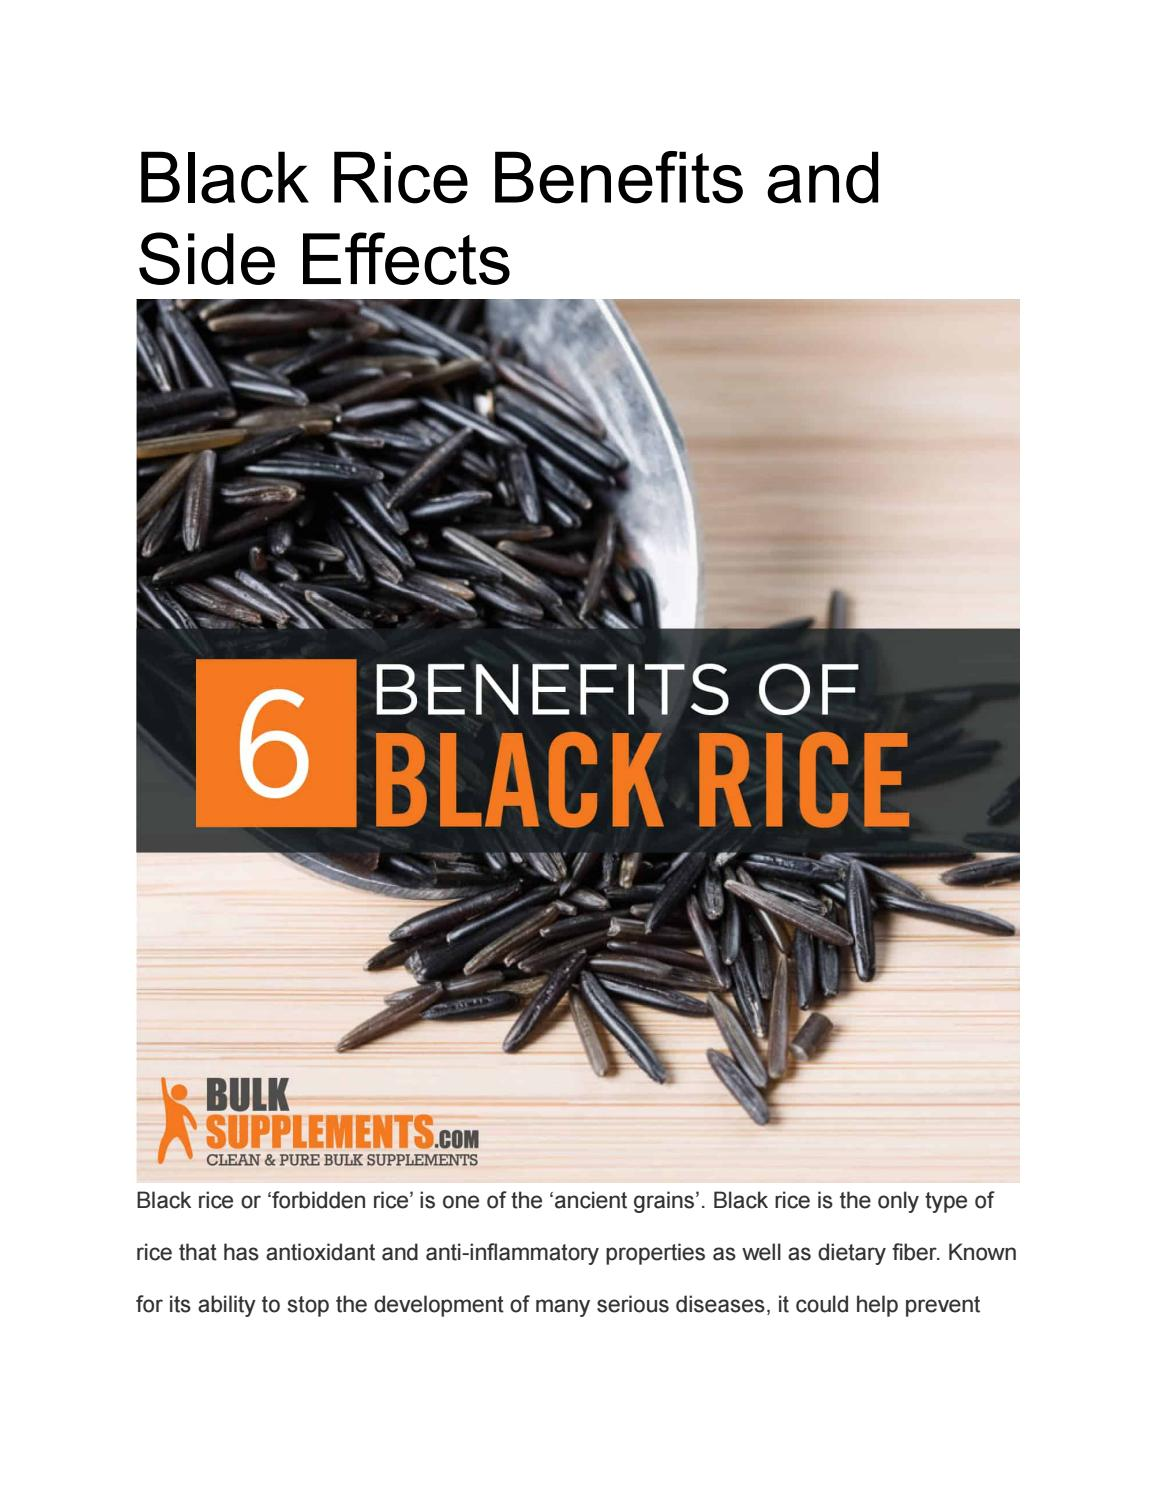 Black Rice Benefits And Side Effects By Bulksupplements1 Issuu